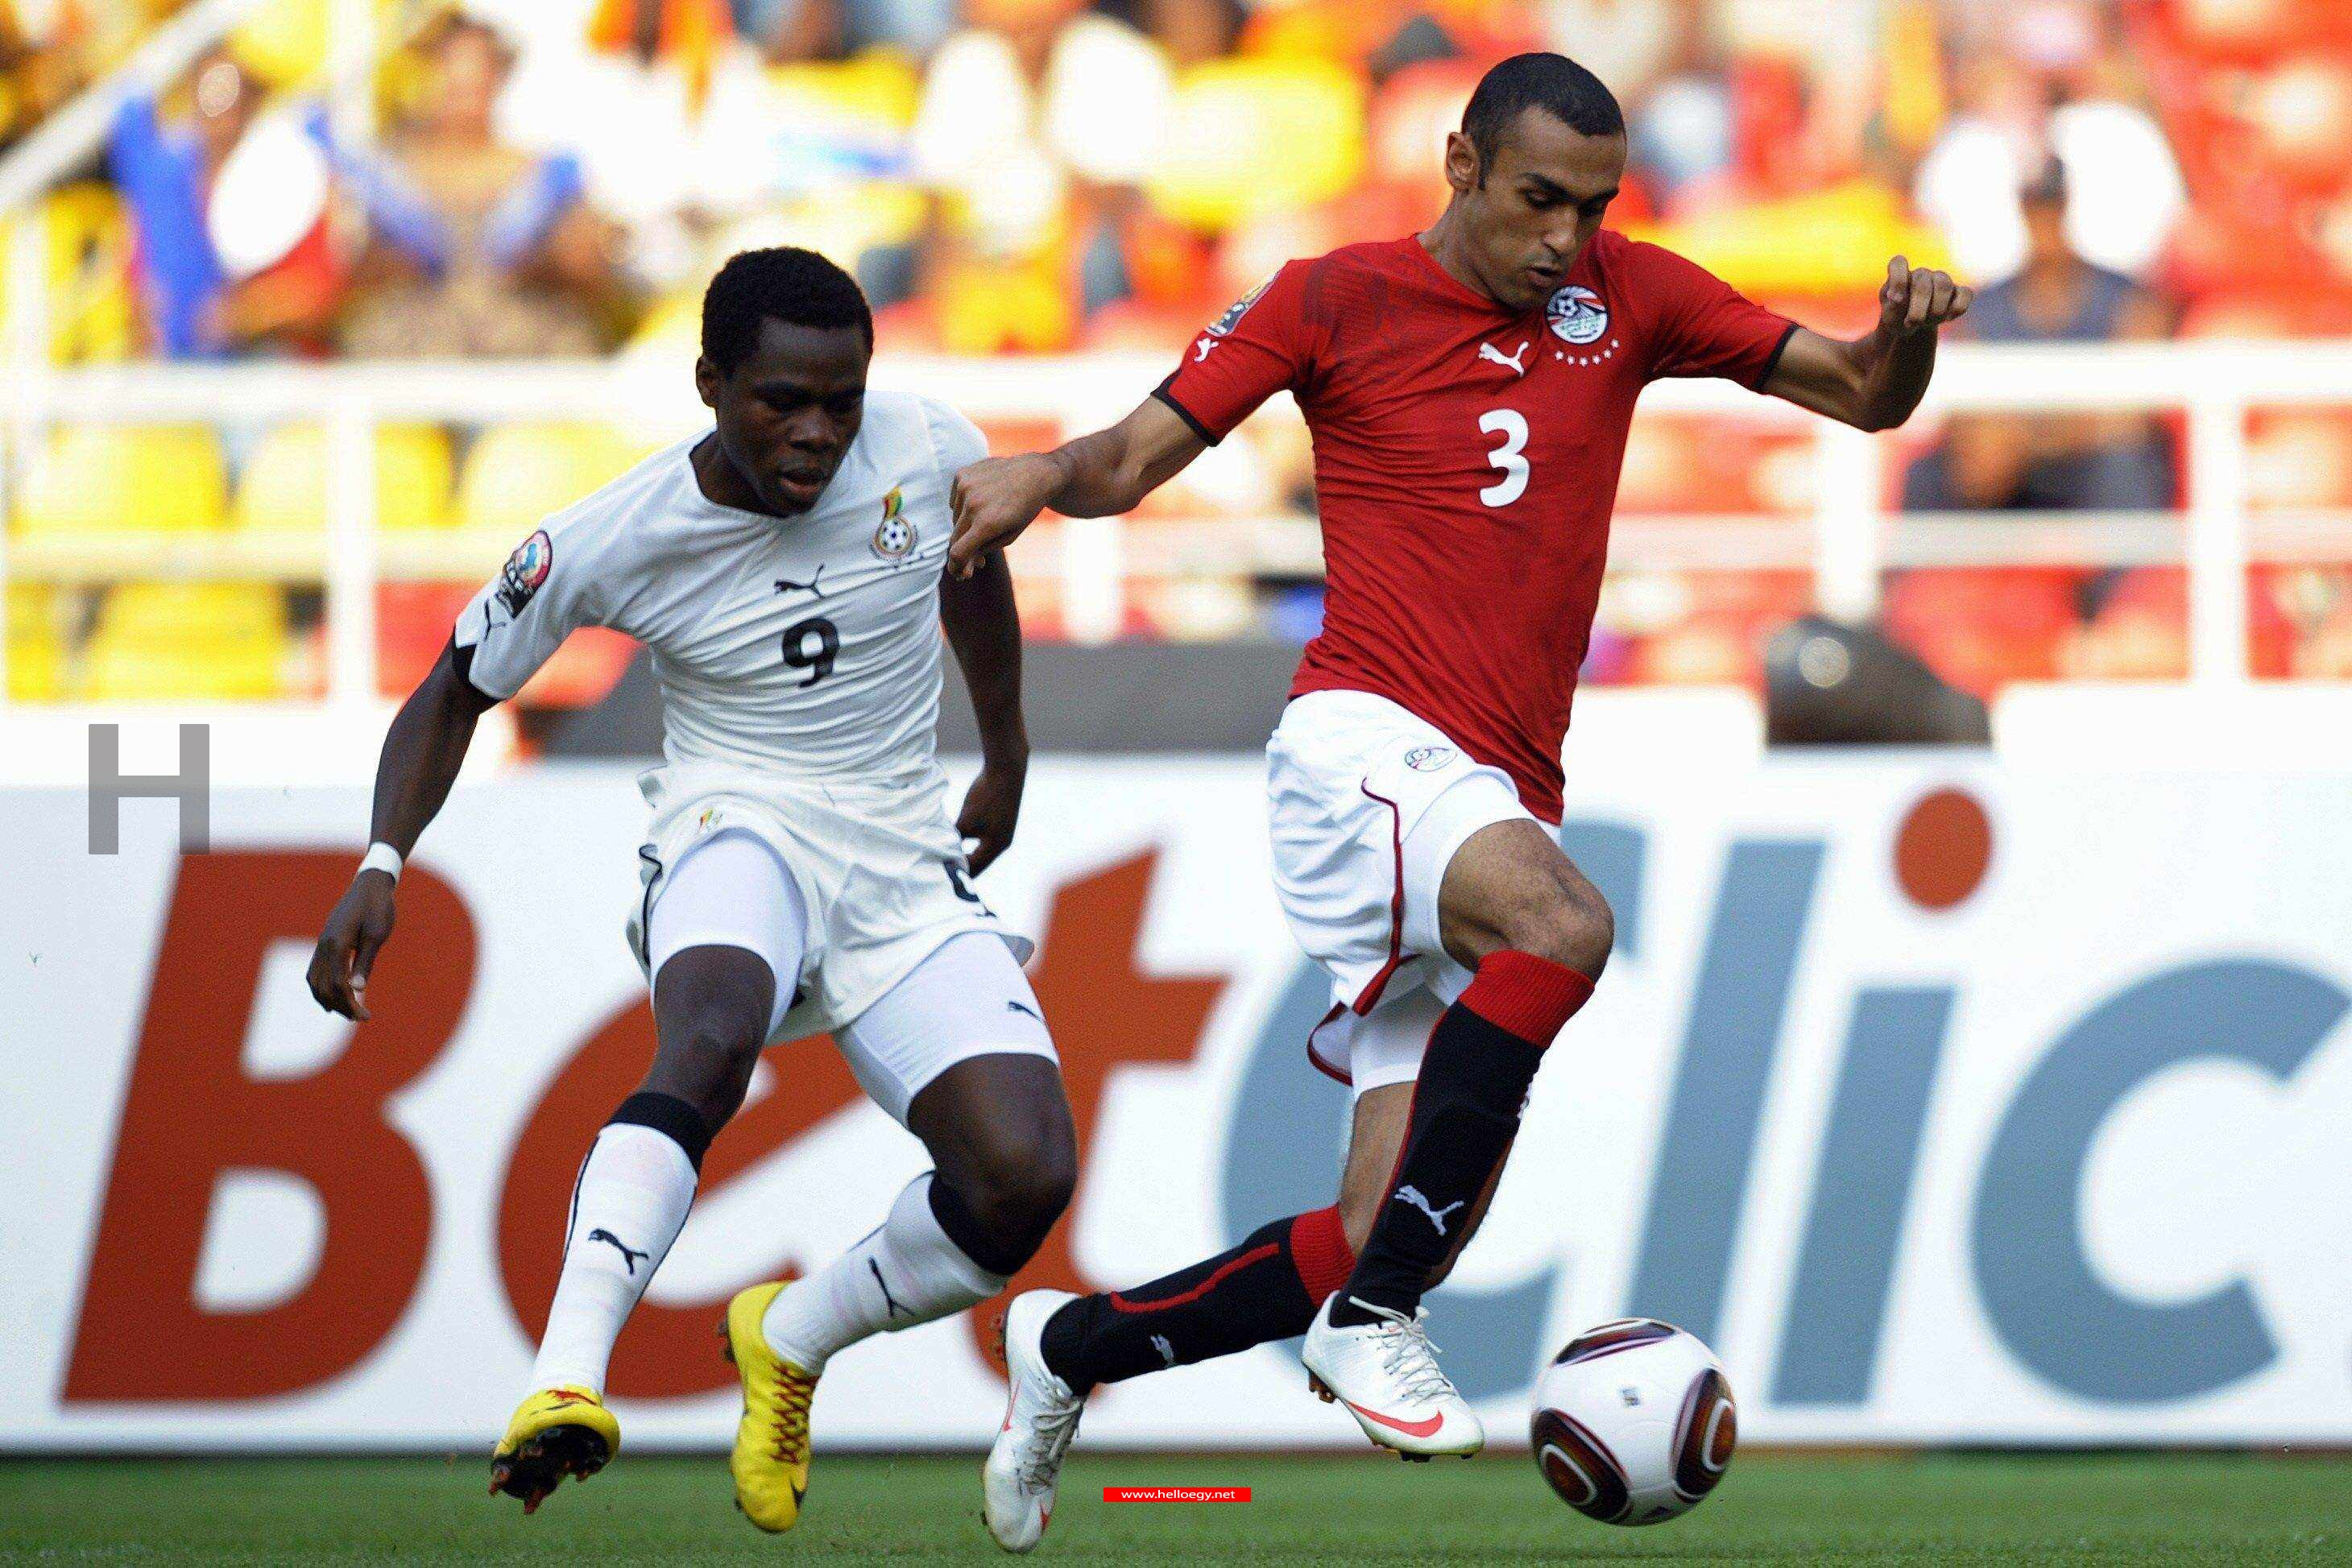 Ghana ask for Egypt World Cup play-off to be moved to neutral venue